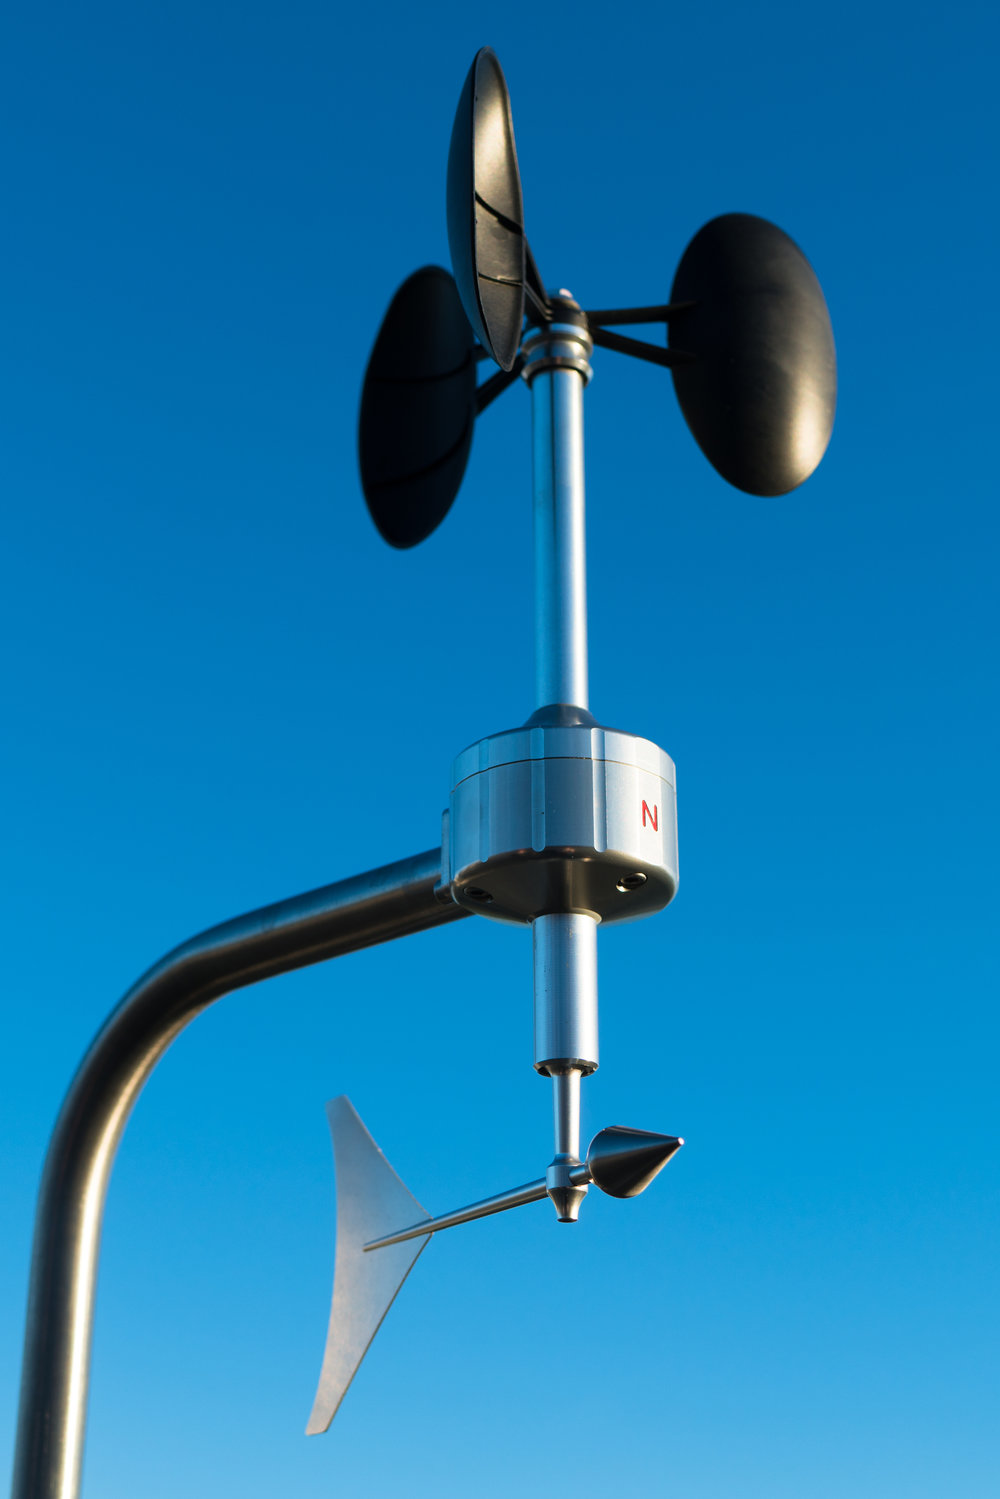 Anemometer detail in clear blue sky